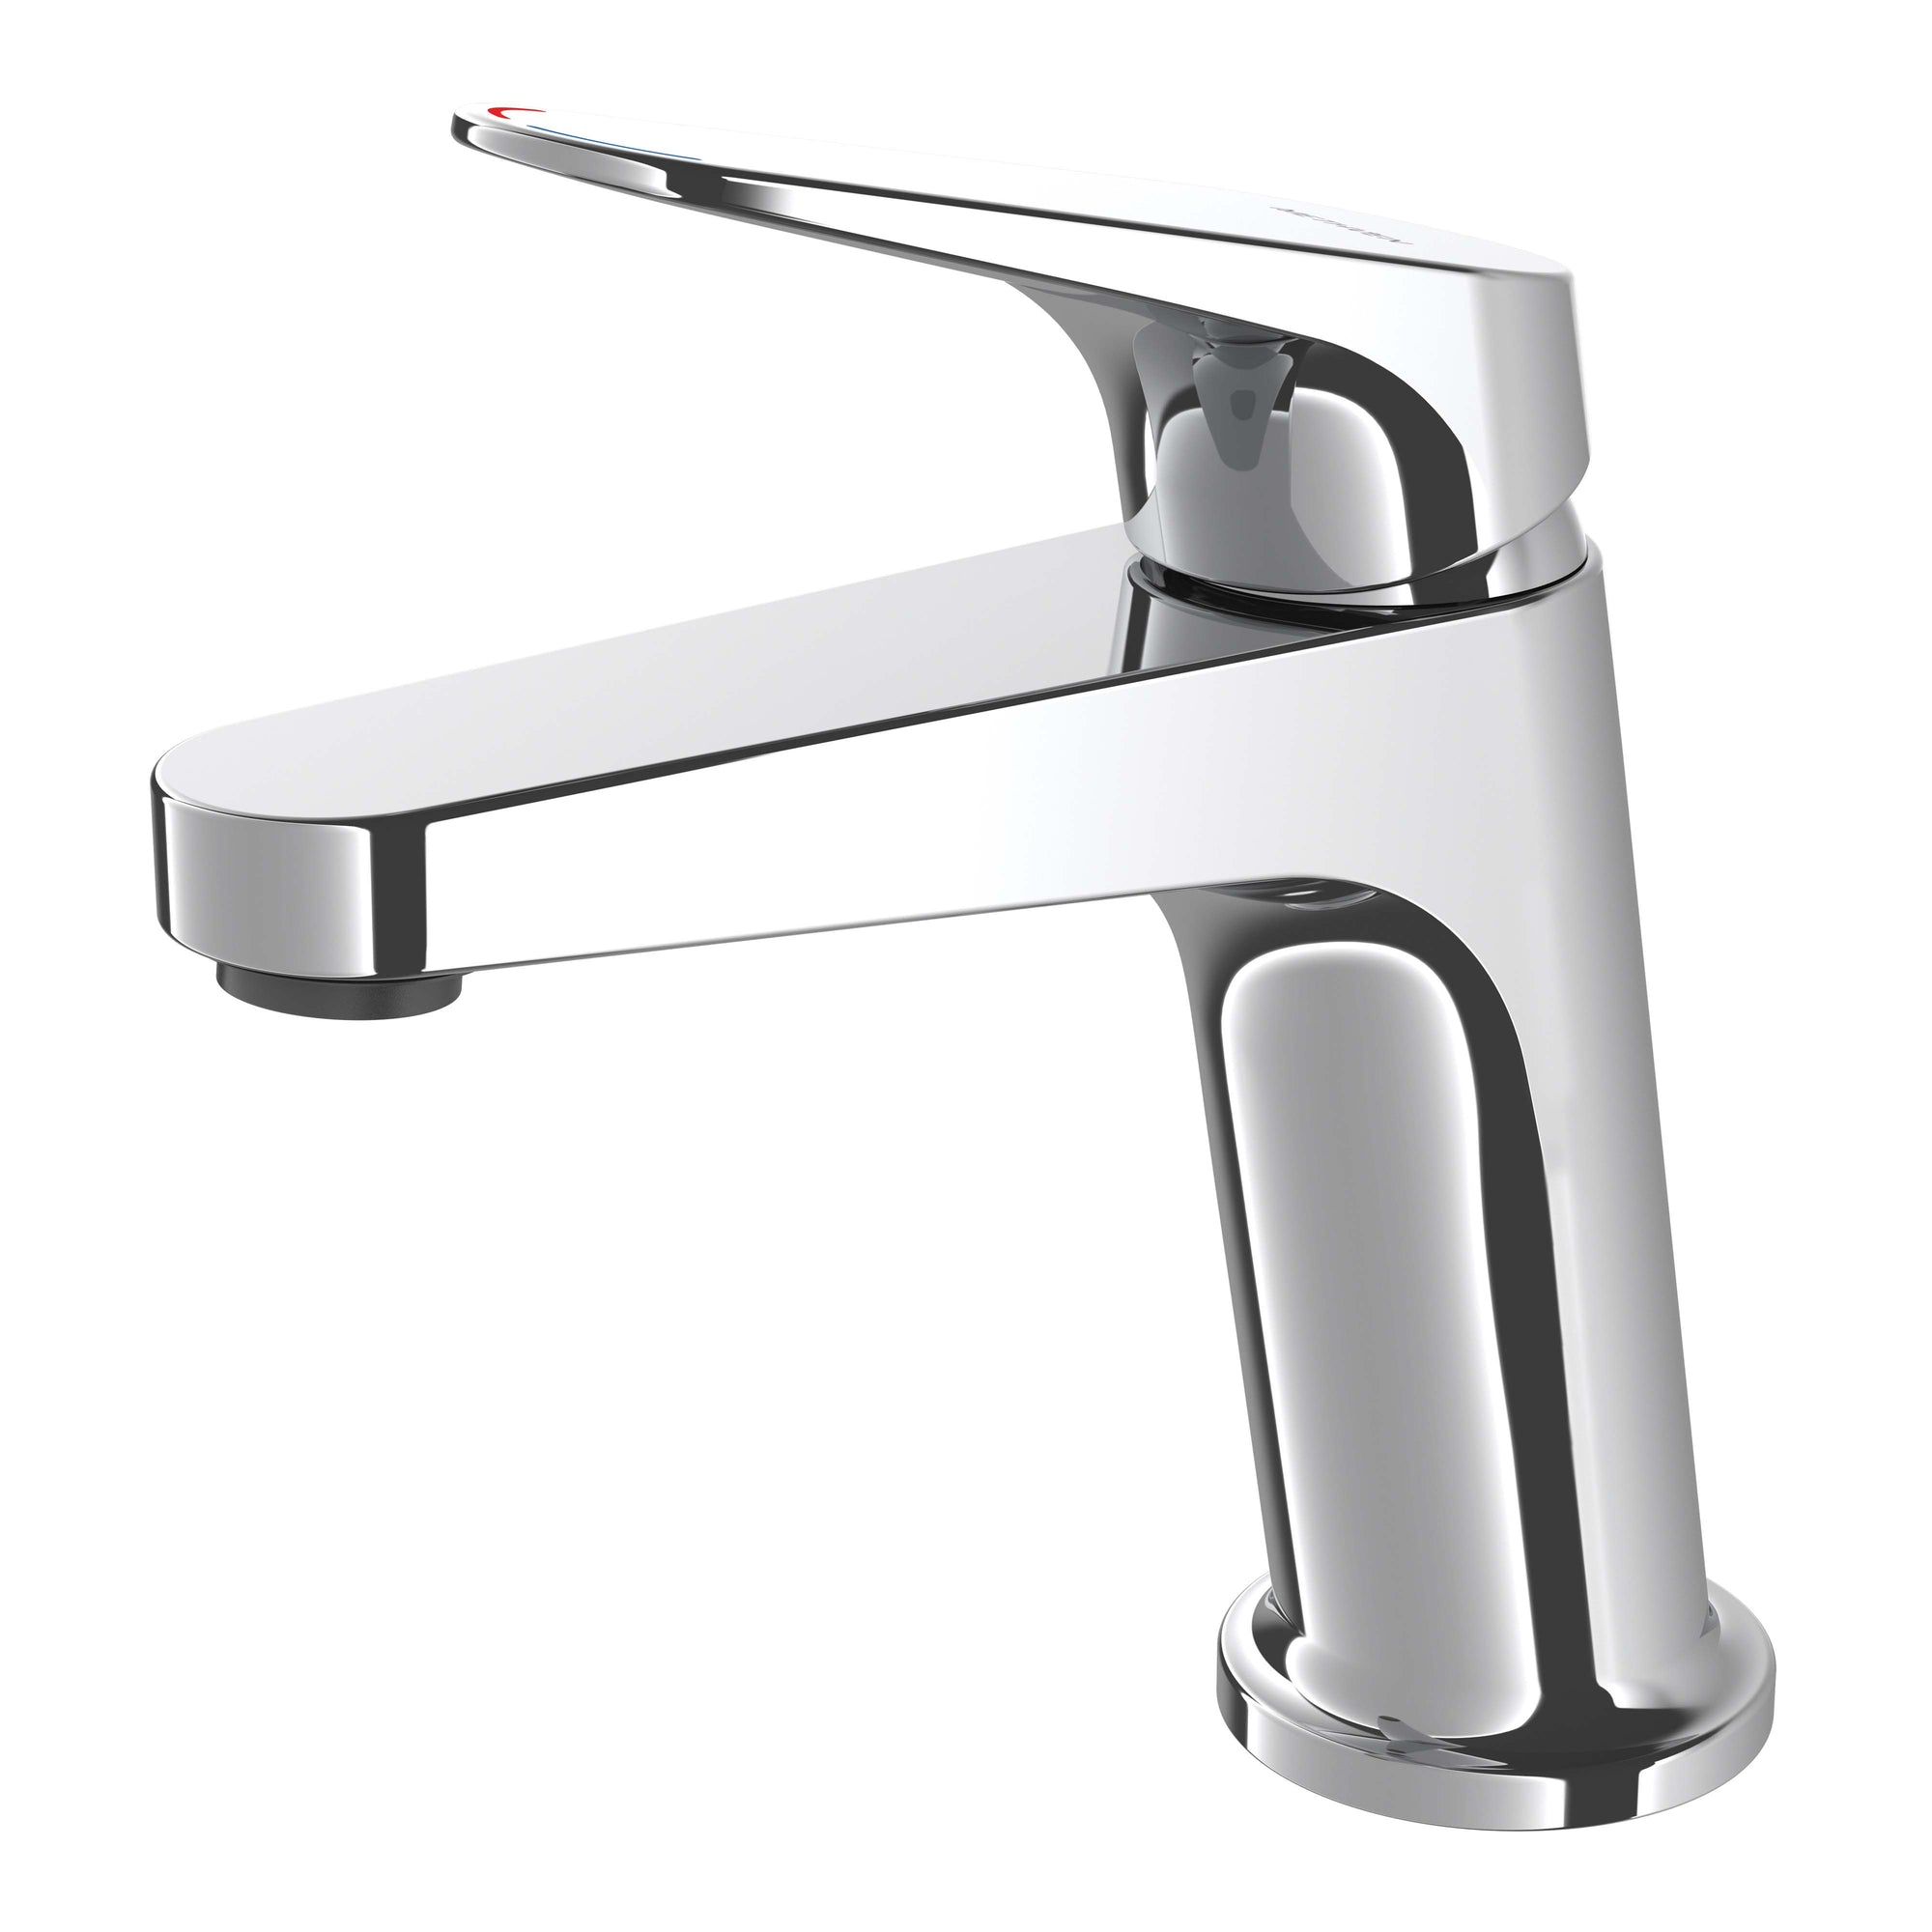 Methven Maku Basin Mixer | Chrome